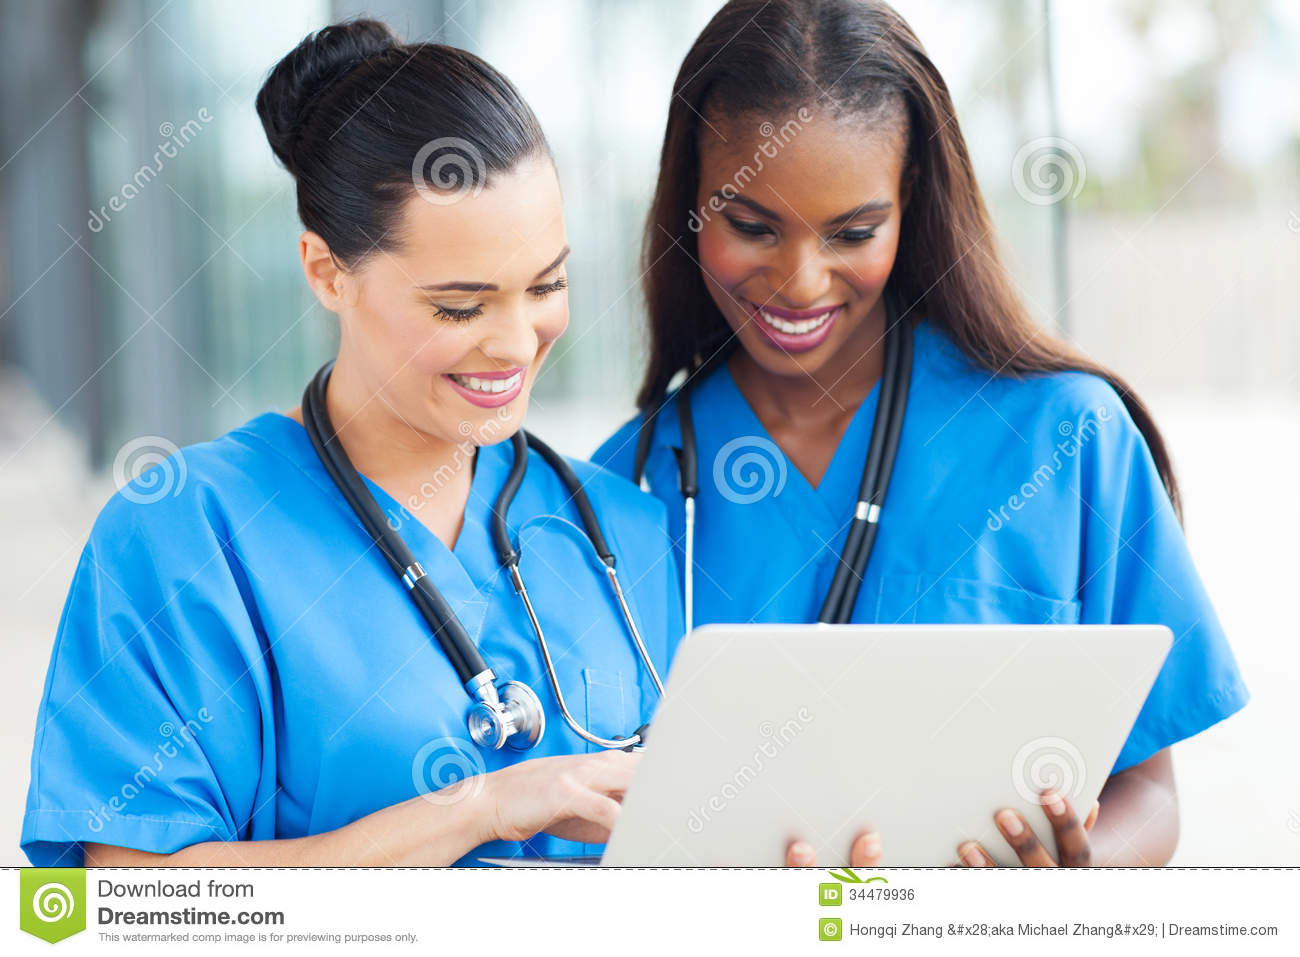 Medical workers laptop